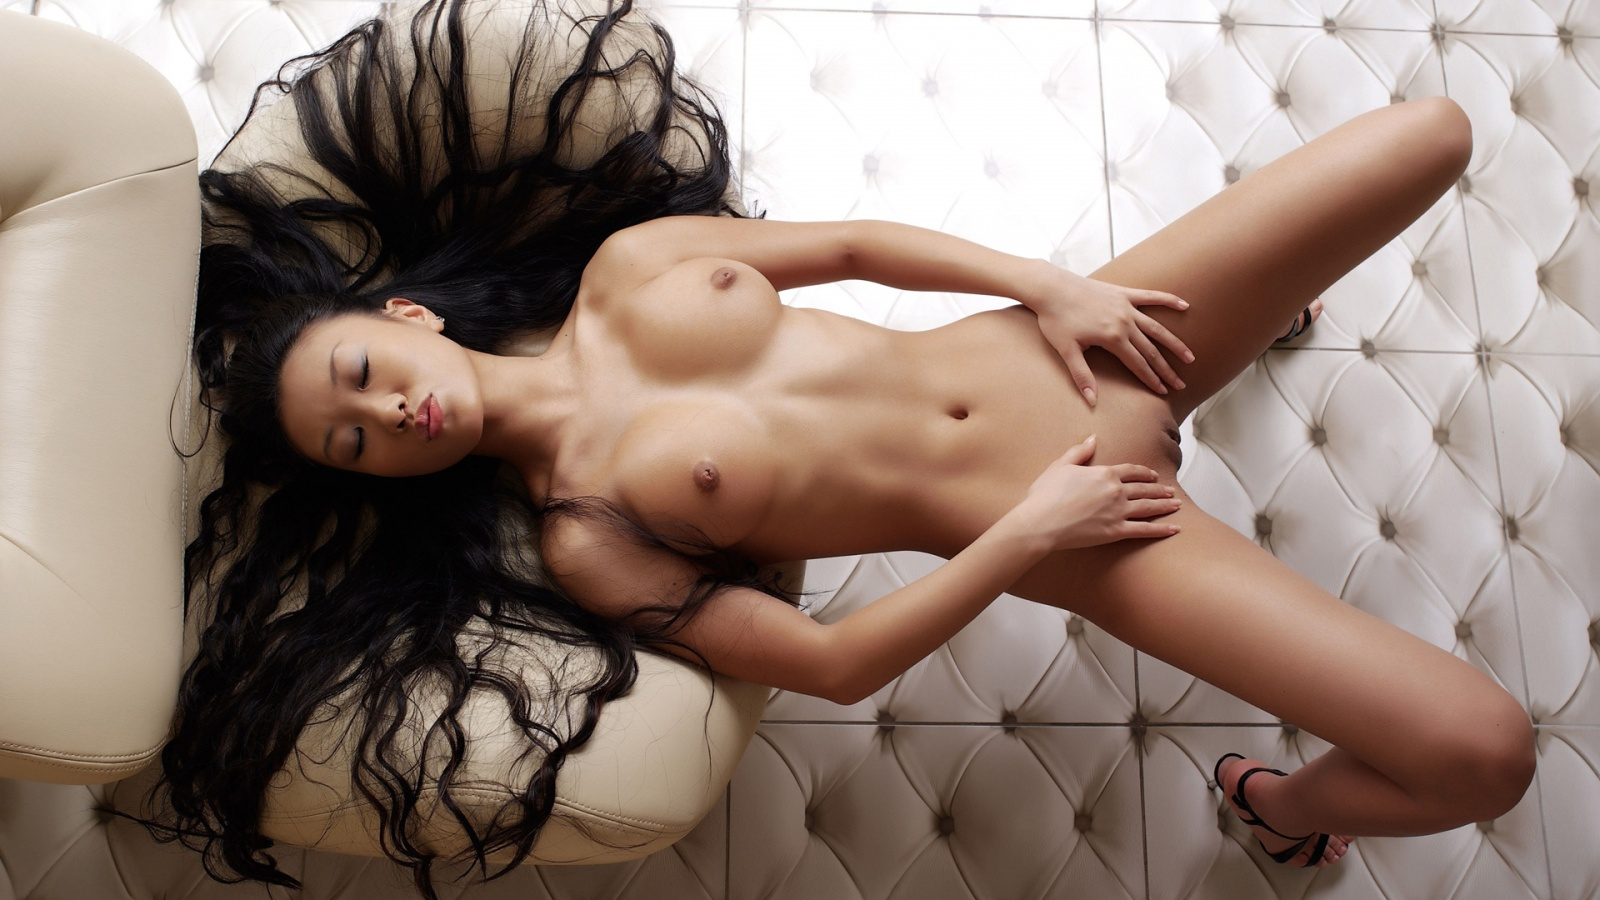 Nude asian beauty shaved pussy porn photo sexy hot desktop ...